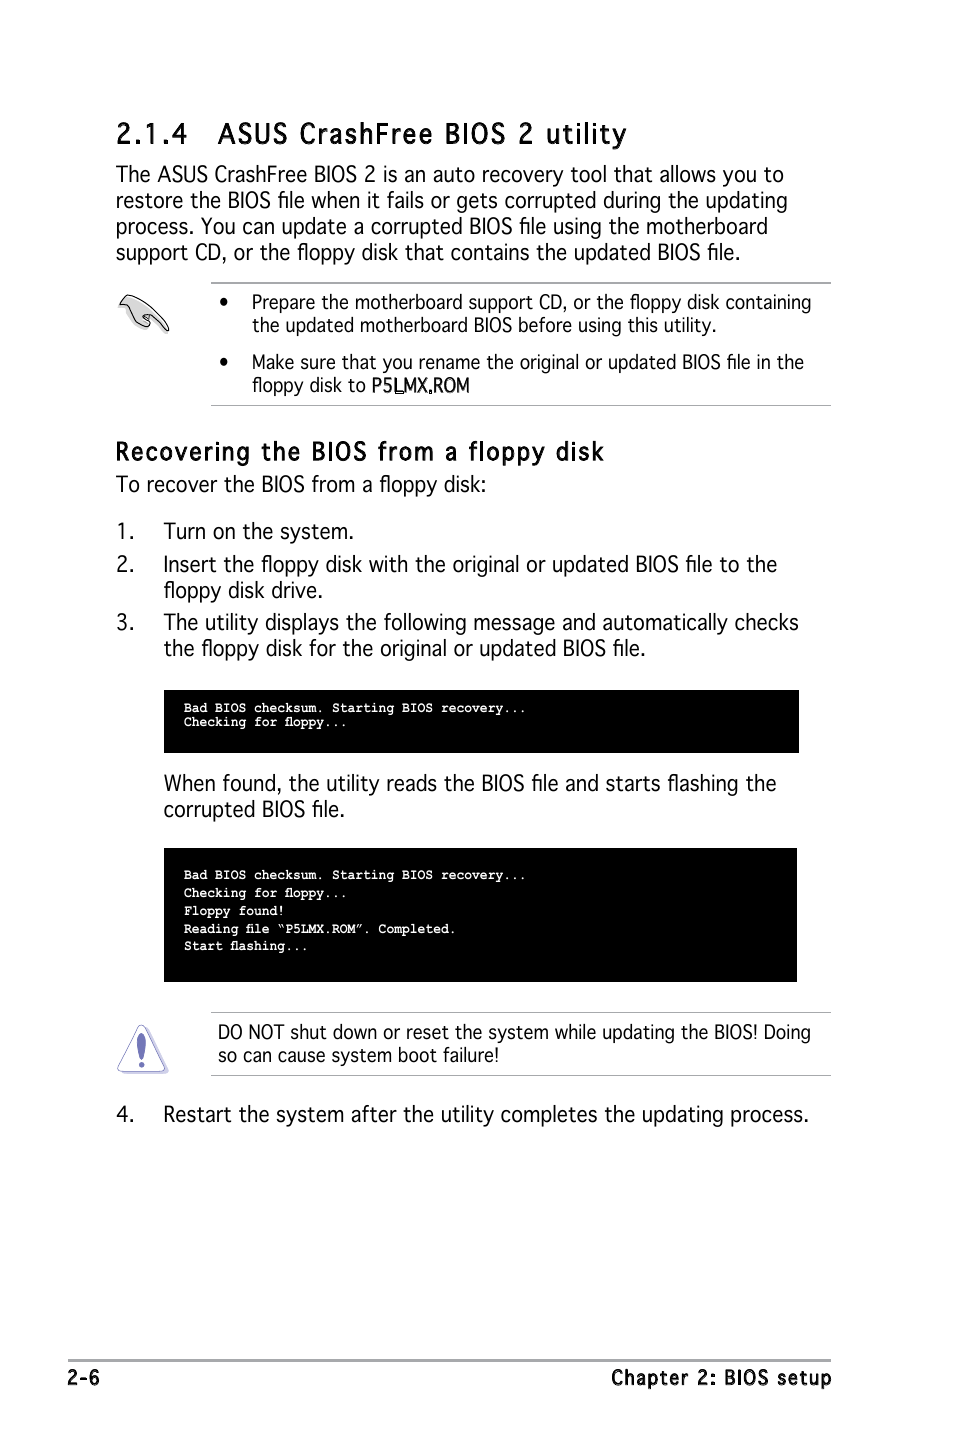 4 asus crashfree bios 2 utility, Recovering the bios from a